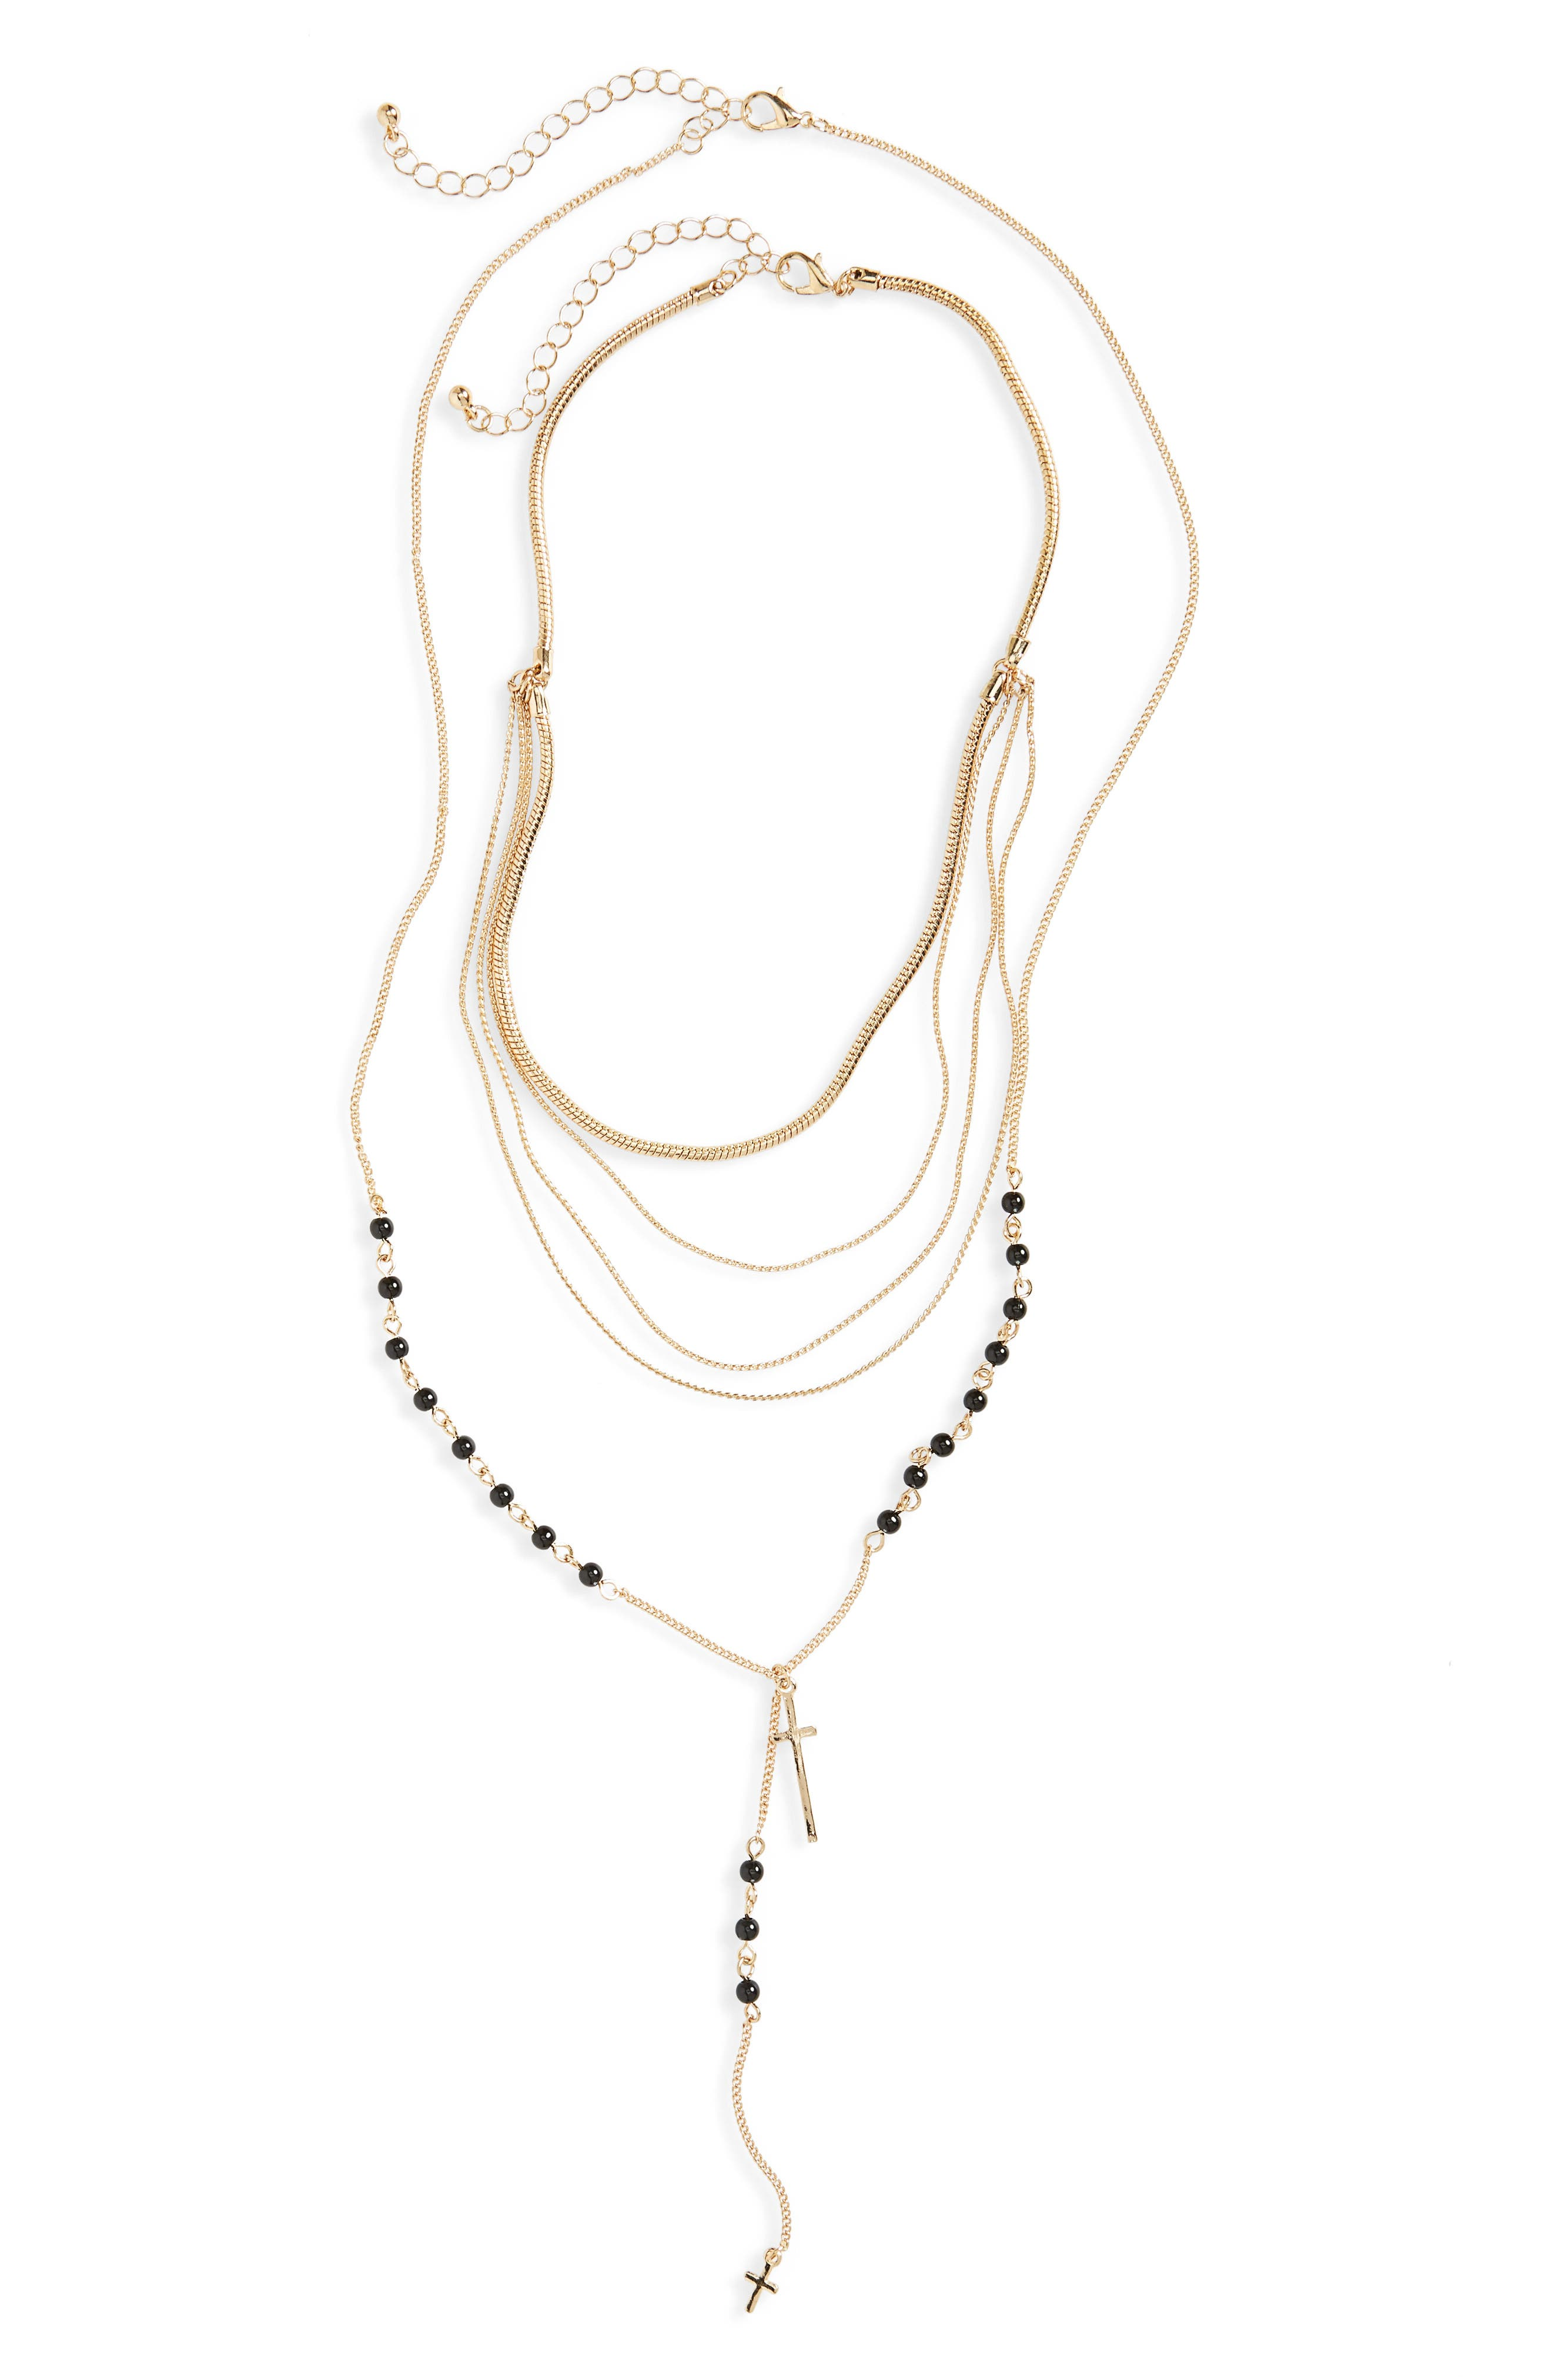 2-Pack Layered Rosary Necklaces,                         Main,                         color, Gold/ Black